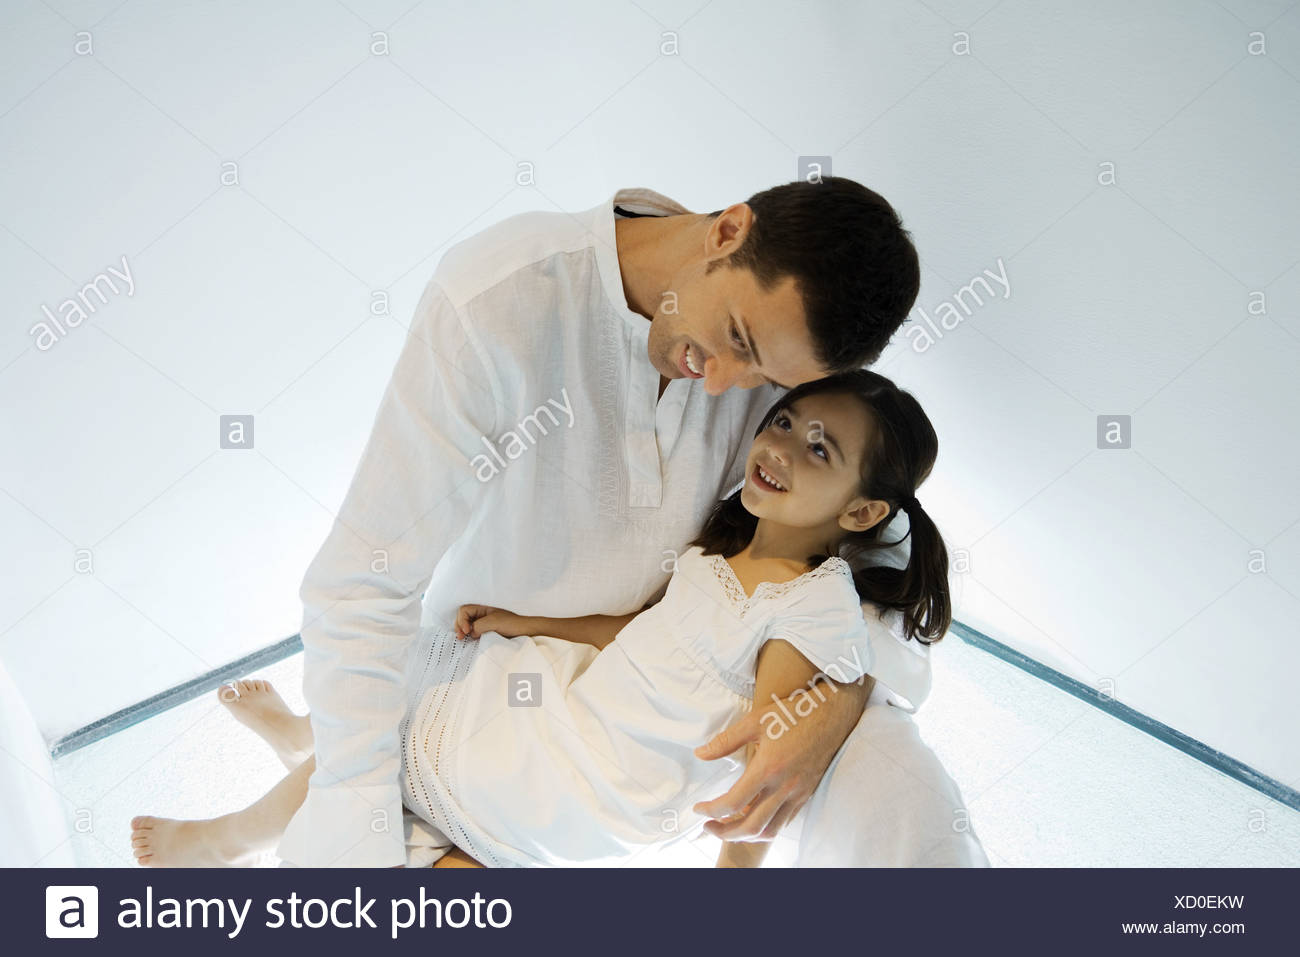 Father holding daughter on lap, leaning head toward her face - Stock Image